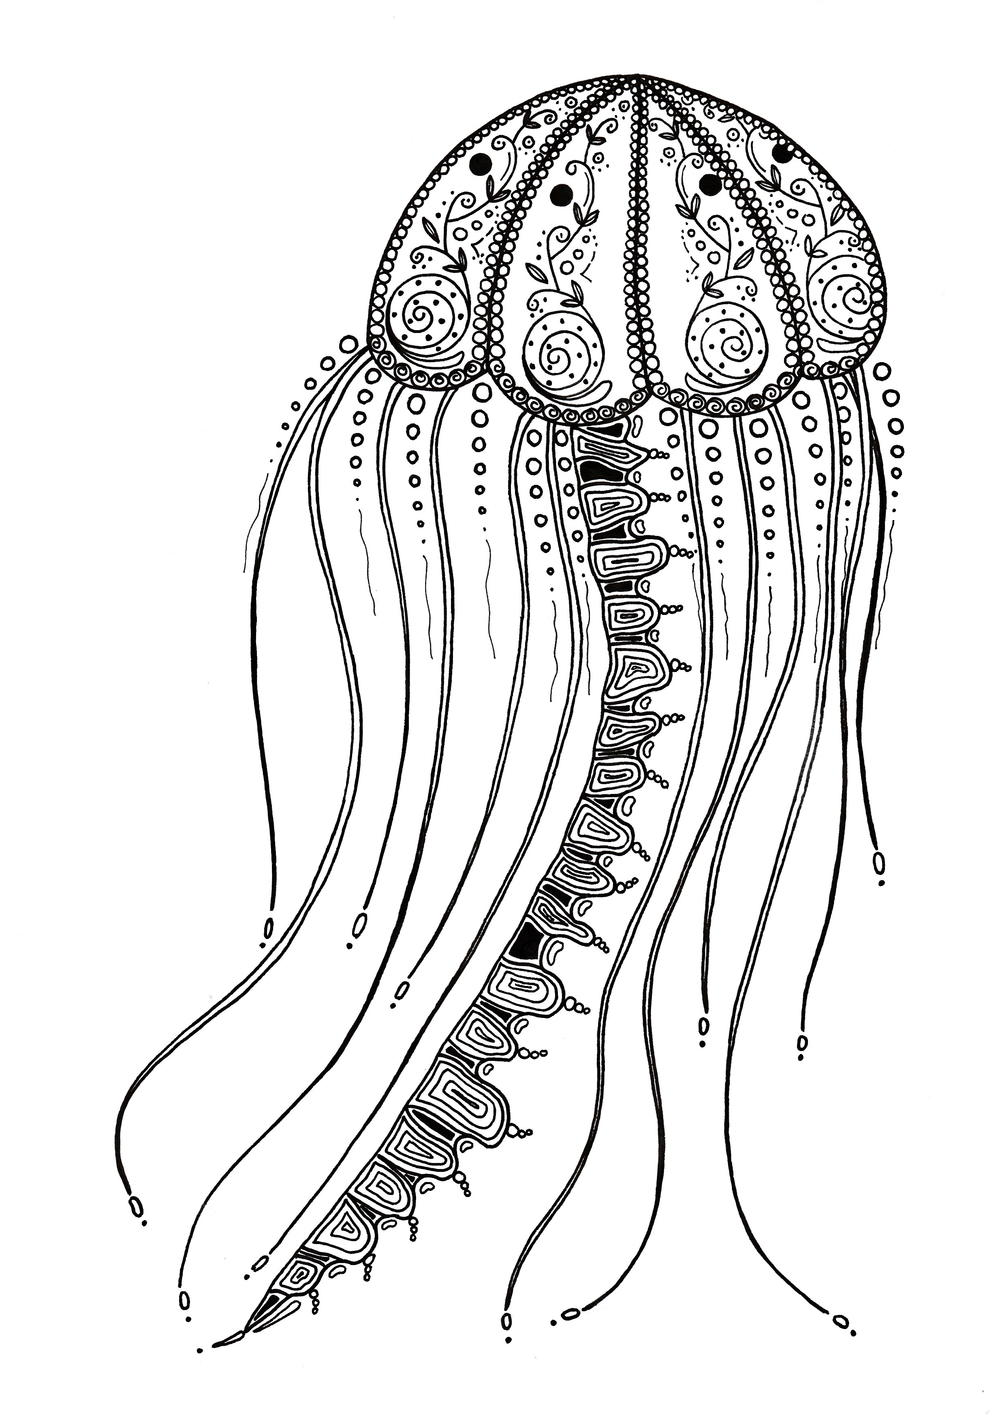 jellyfish coloring jellyfish coloring page free download on clipartmag jellyfish coloring